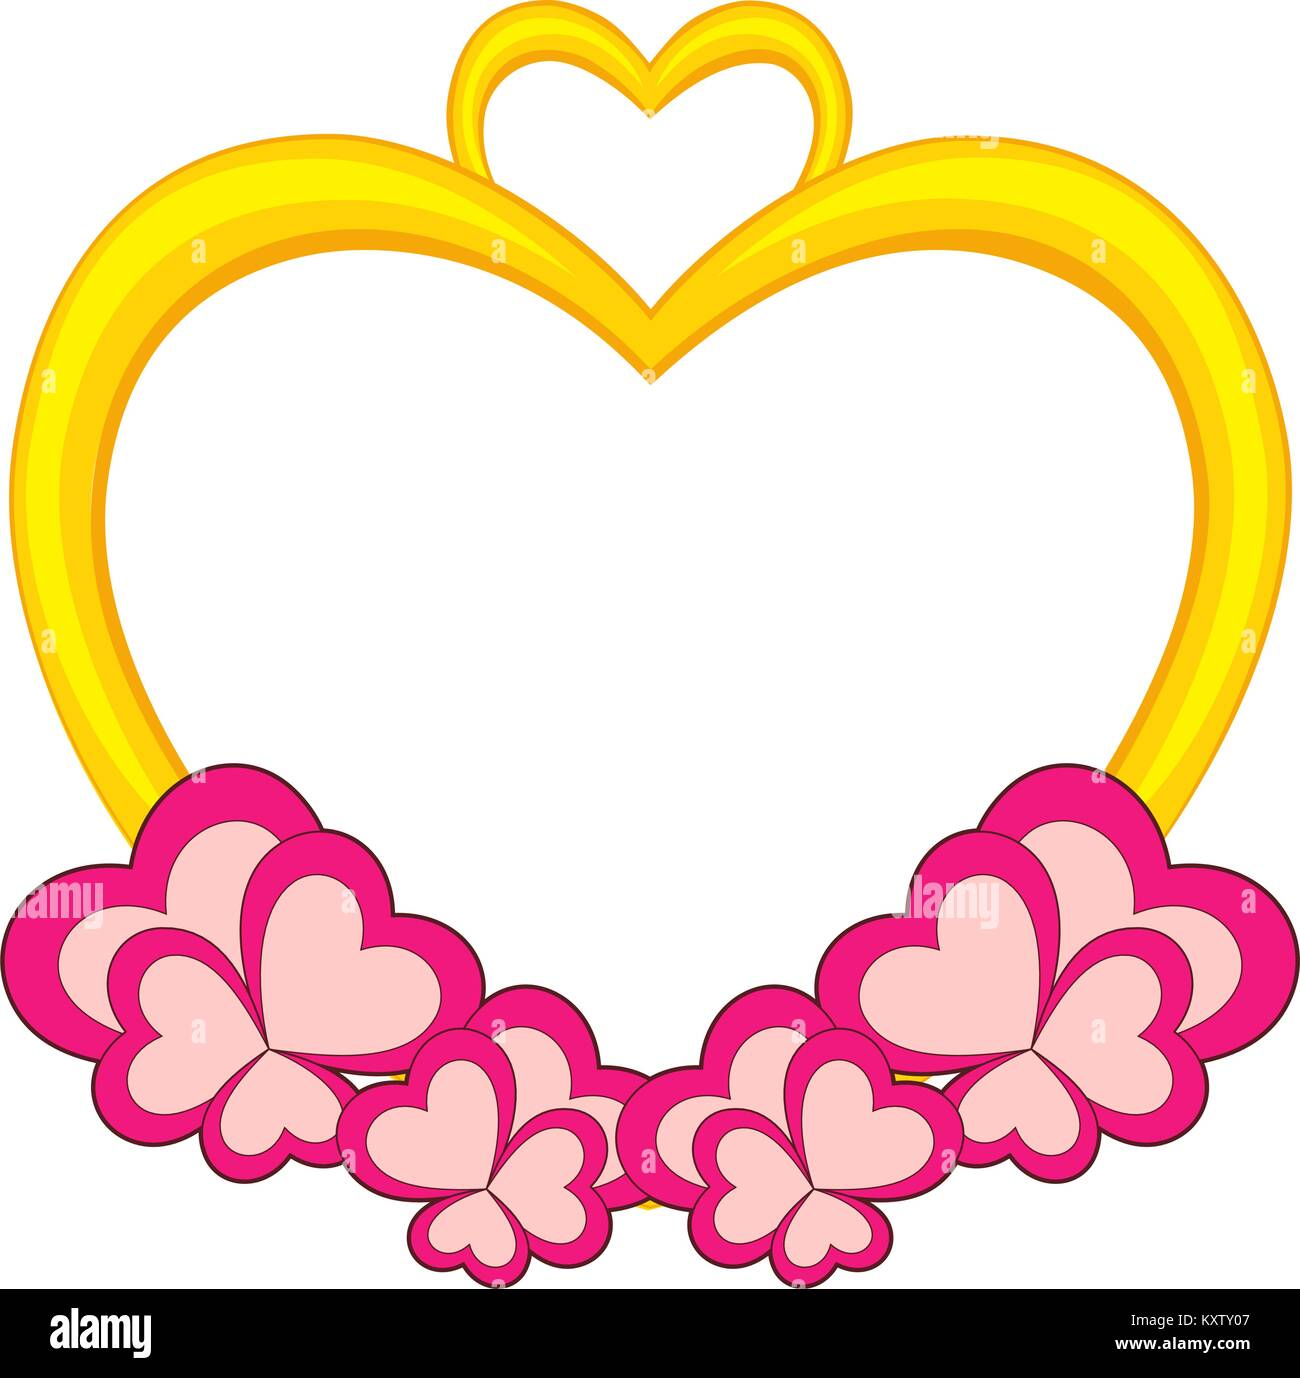 Heart shaped frame for valentine day card Stock Vector Art ...